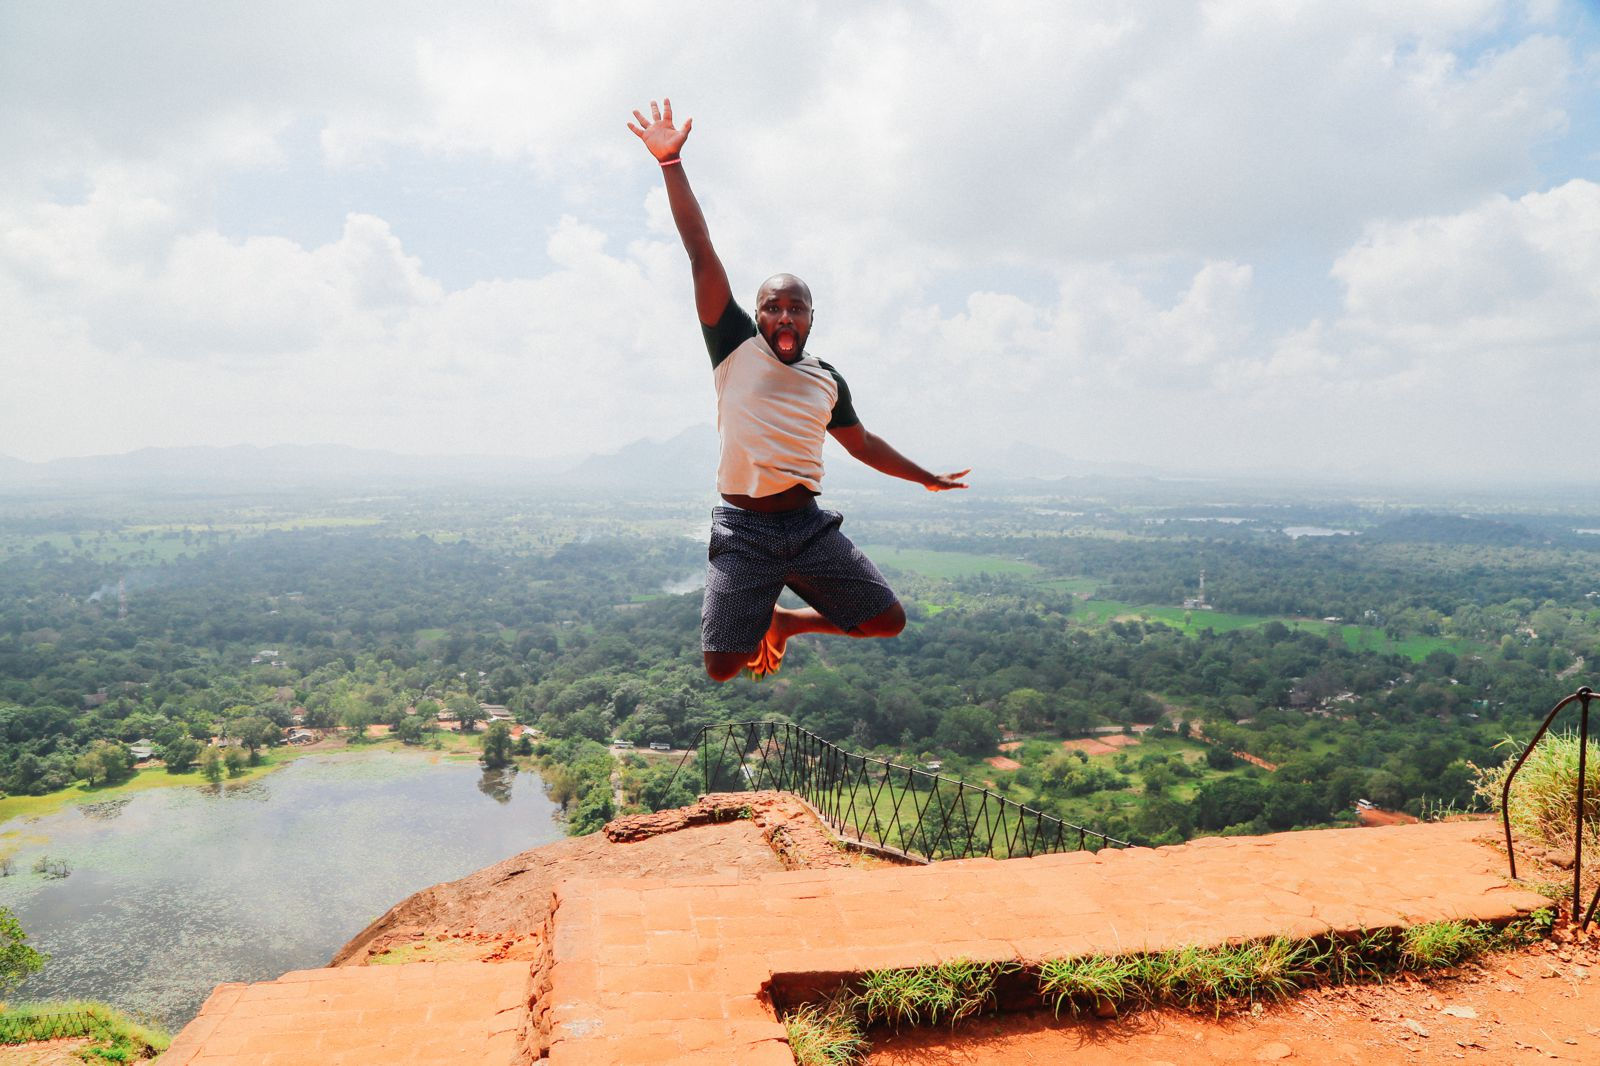 The Complete Guide To Climbing Sri Lanka's UNESCO World Heritage Site Of Sigiriya - Lion Rock (47)